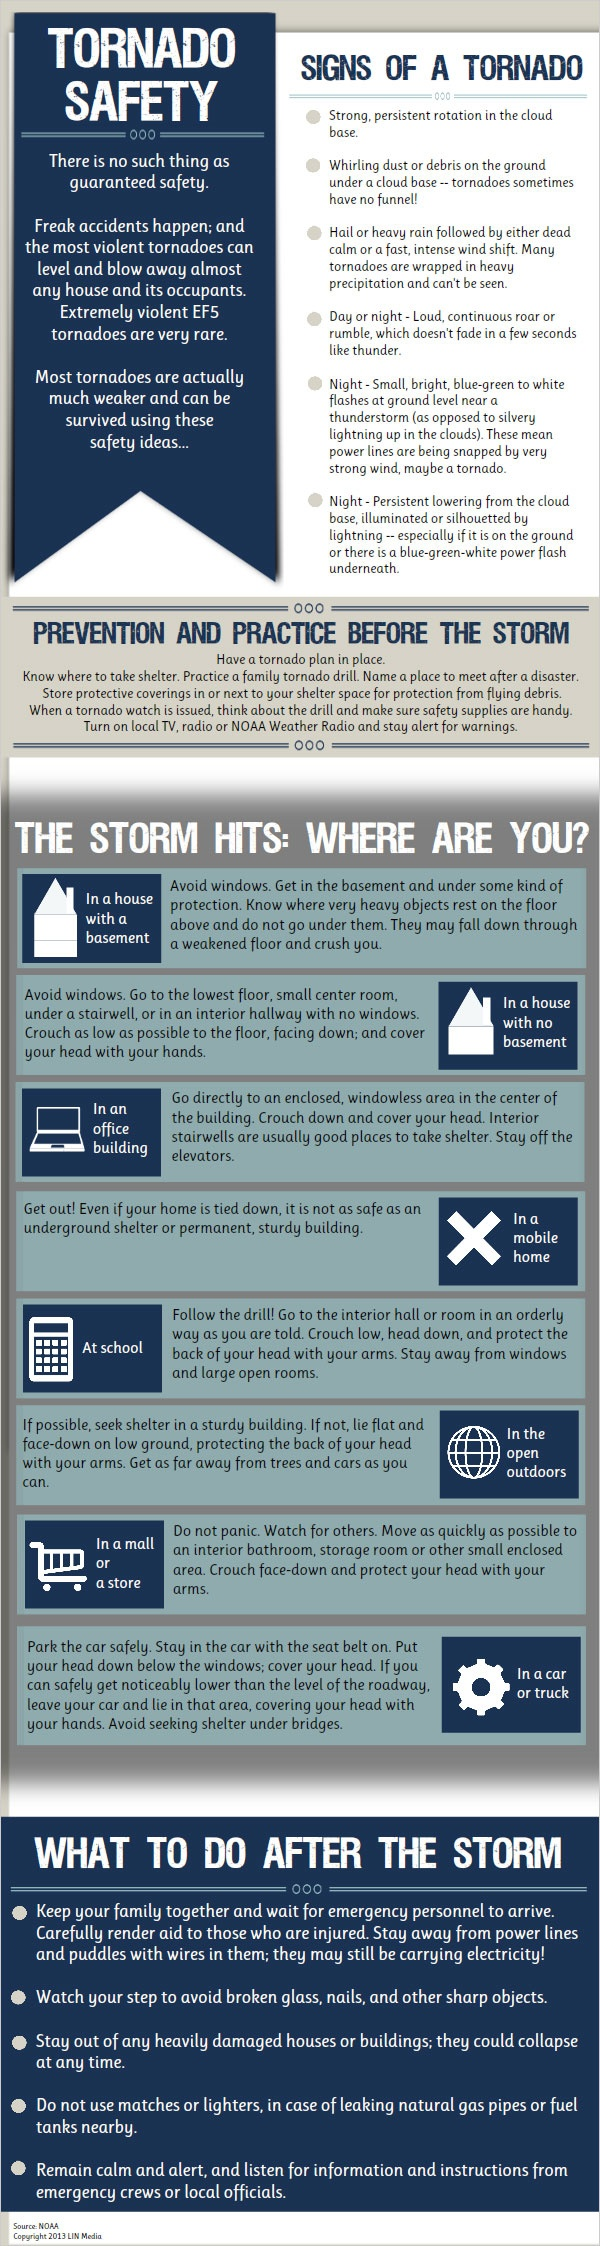 Tornado #Safety Infographic. Tornadoes are most likely to occur between 3:00 pm and 9:00 pm, but can occur at any time.